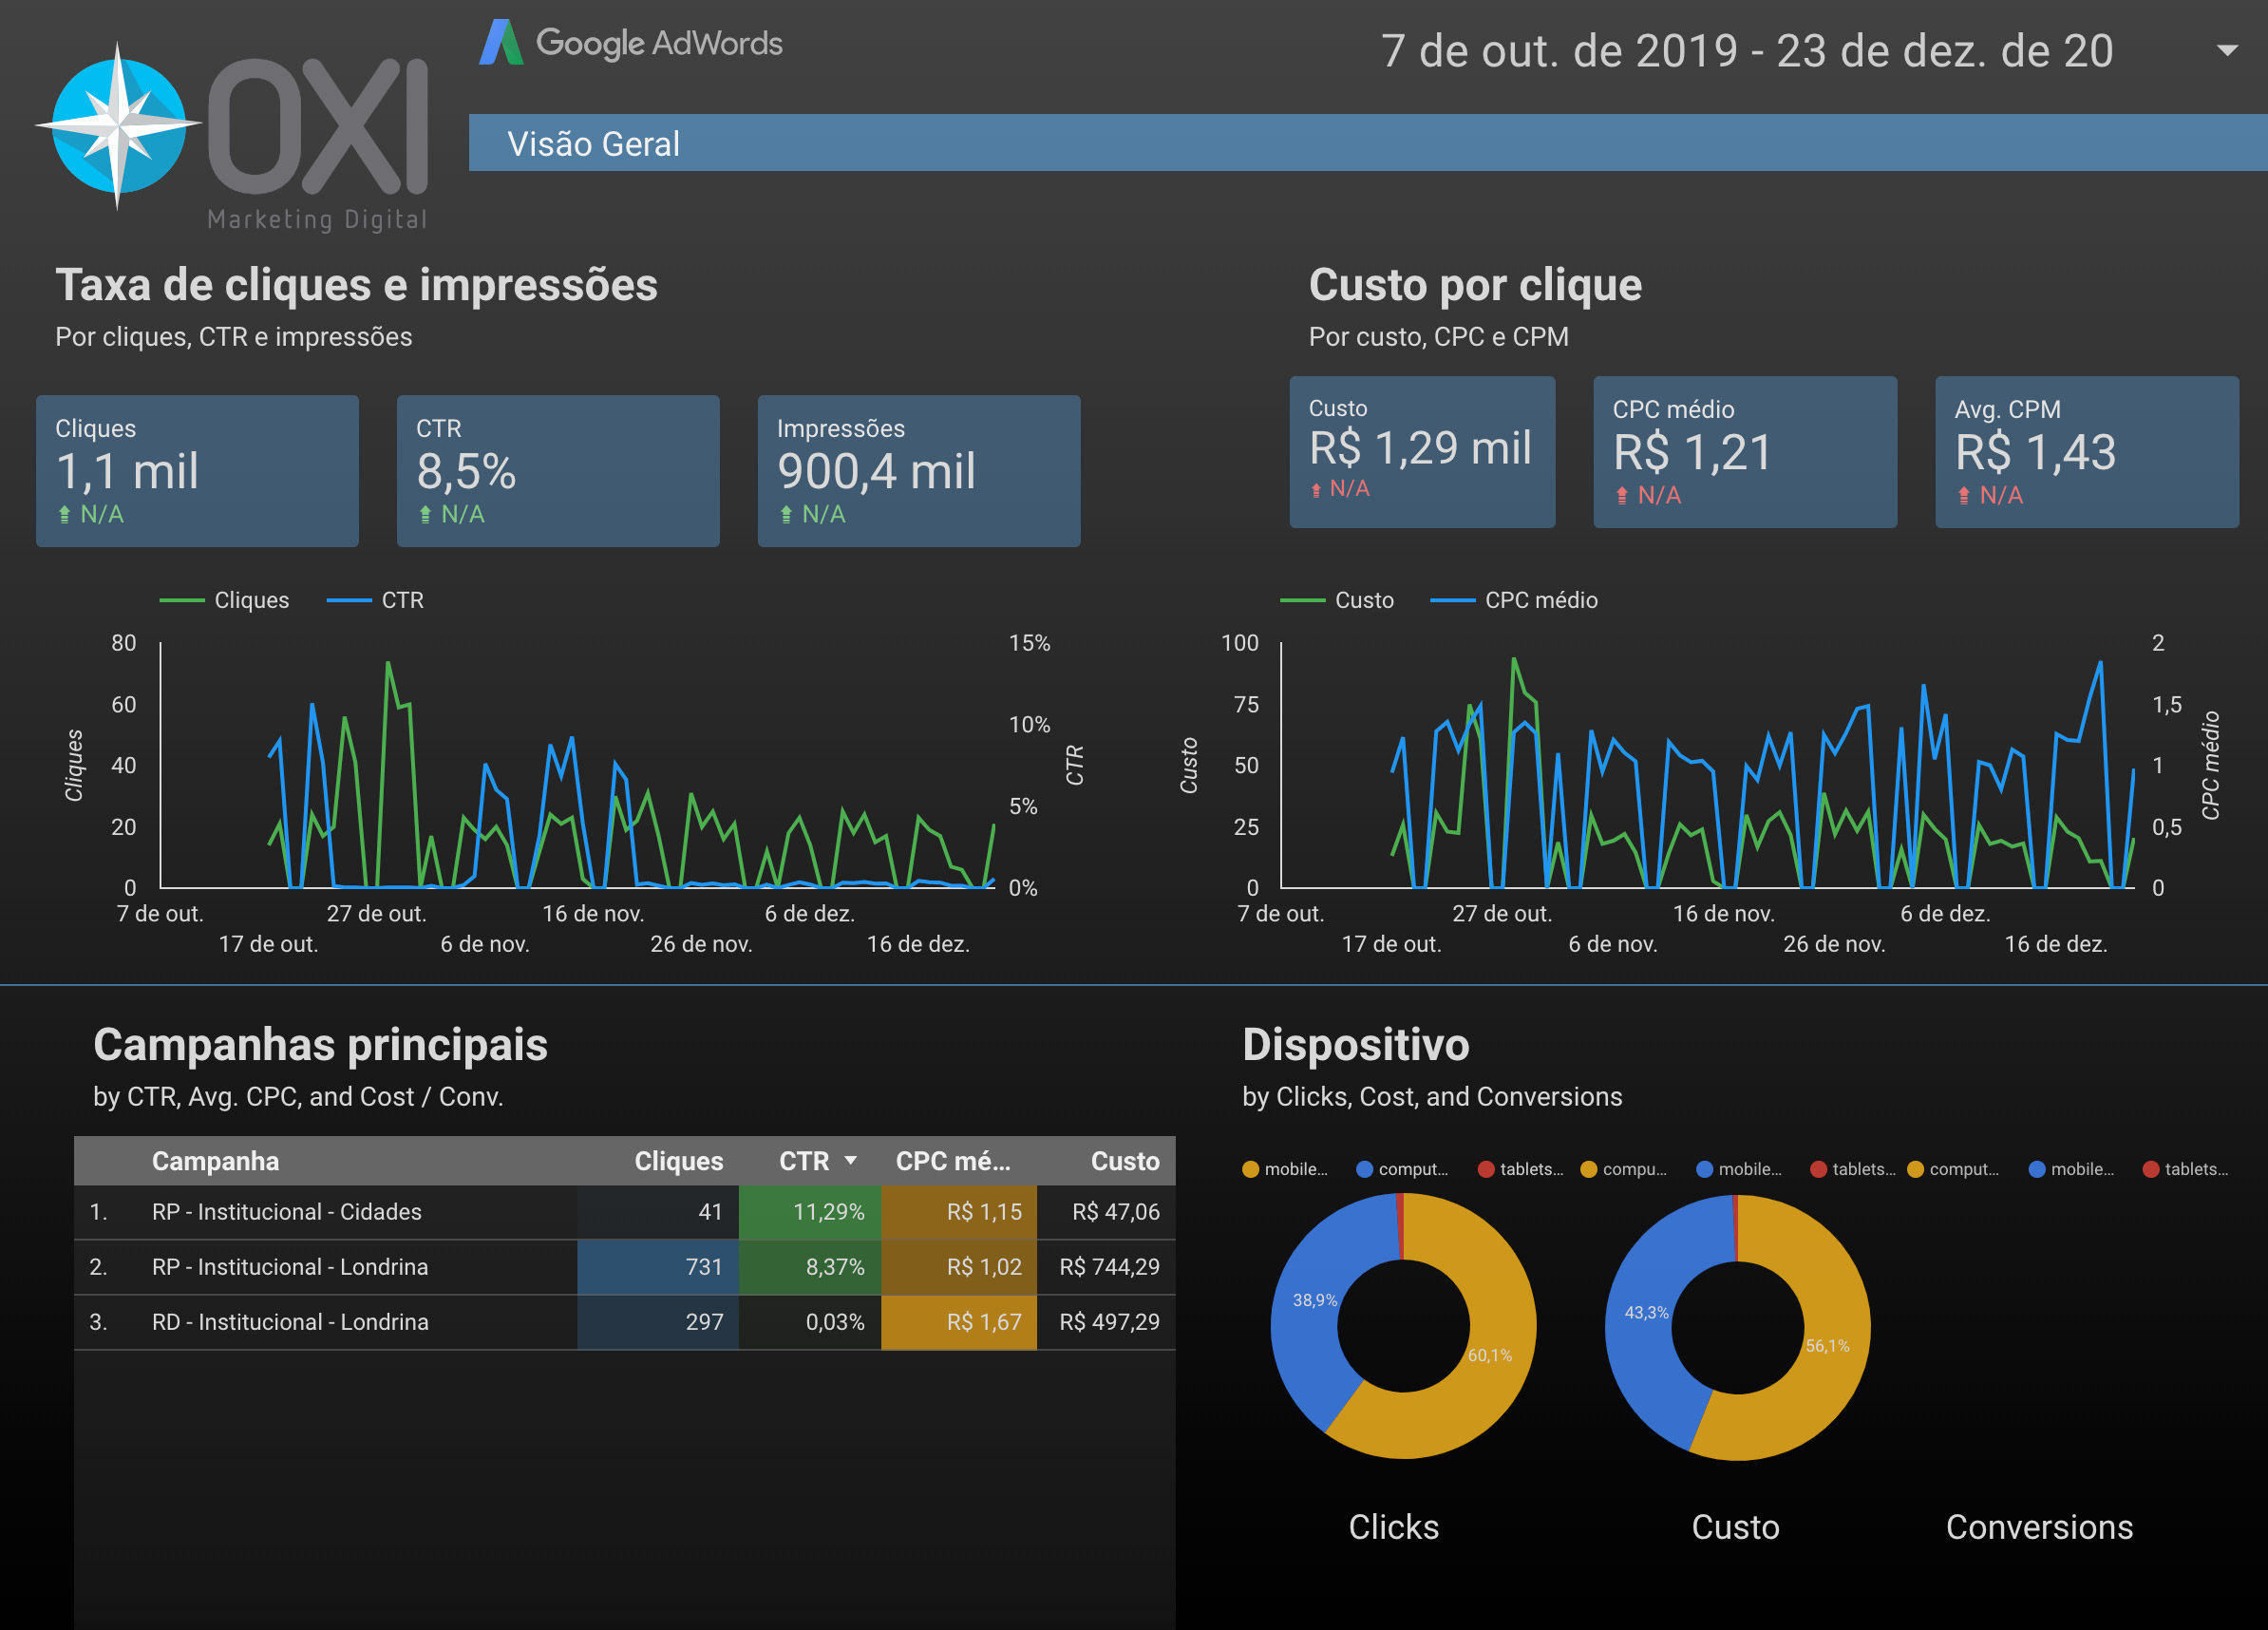 Campanhas de Google e anuncios da Oxi Marketing Digital em Londrina